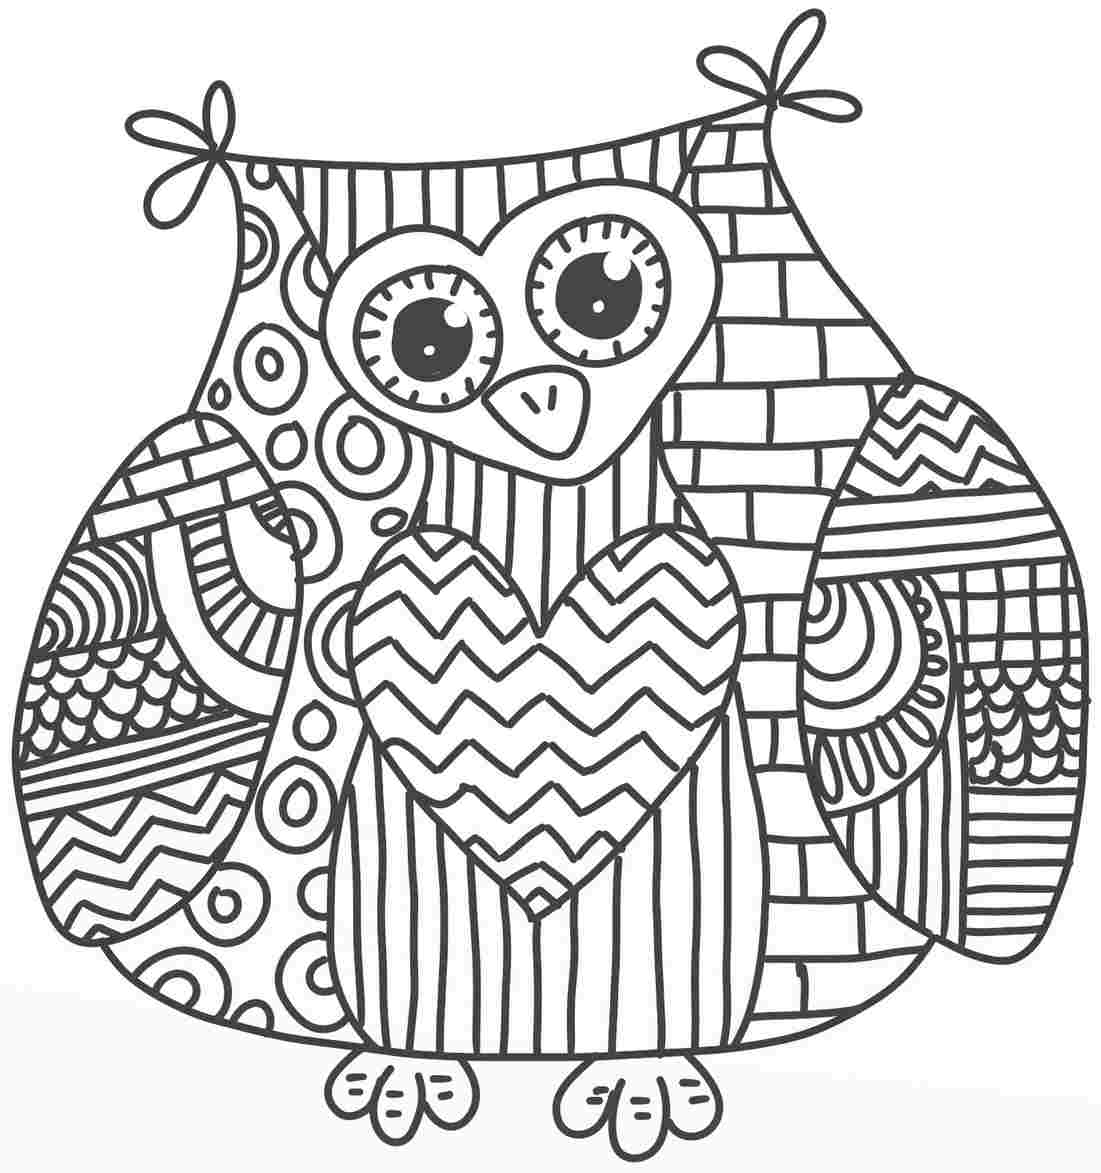 Adult Cute Printable Coloring Pages Of Owls Gallery Images top cute owl coloring pages az owls adults adult free printable images